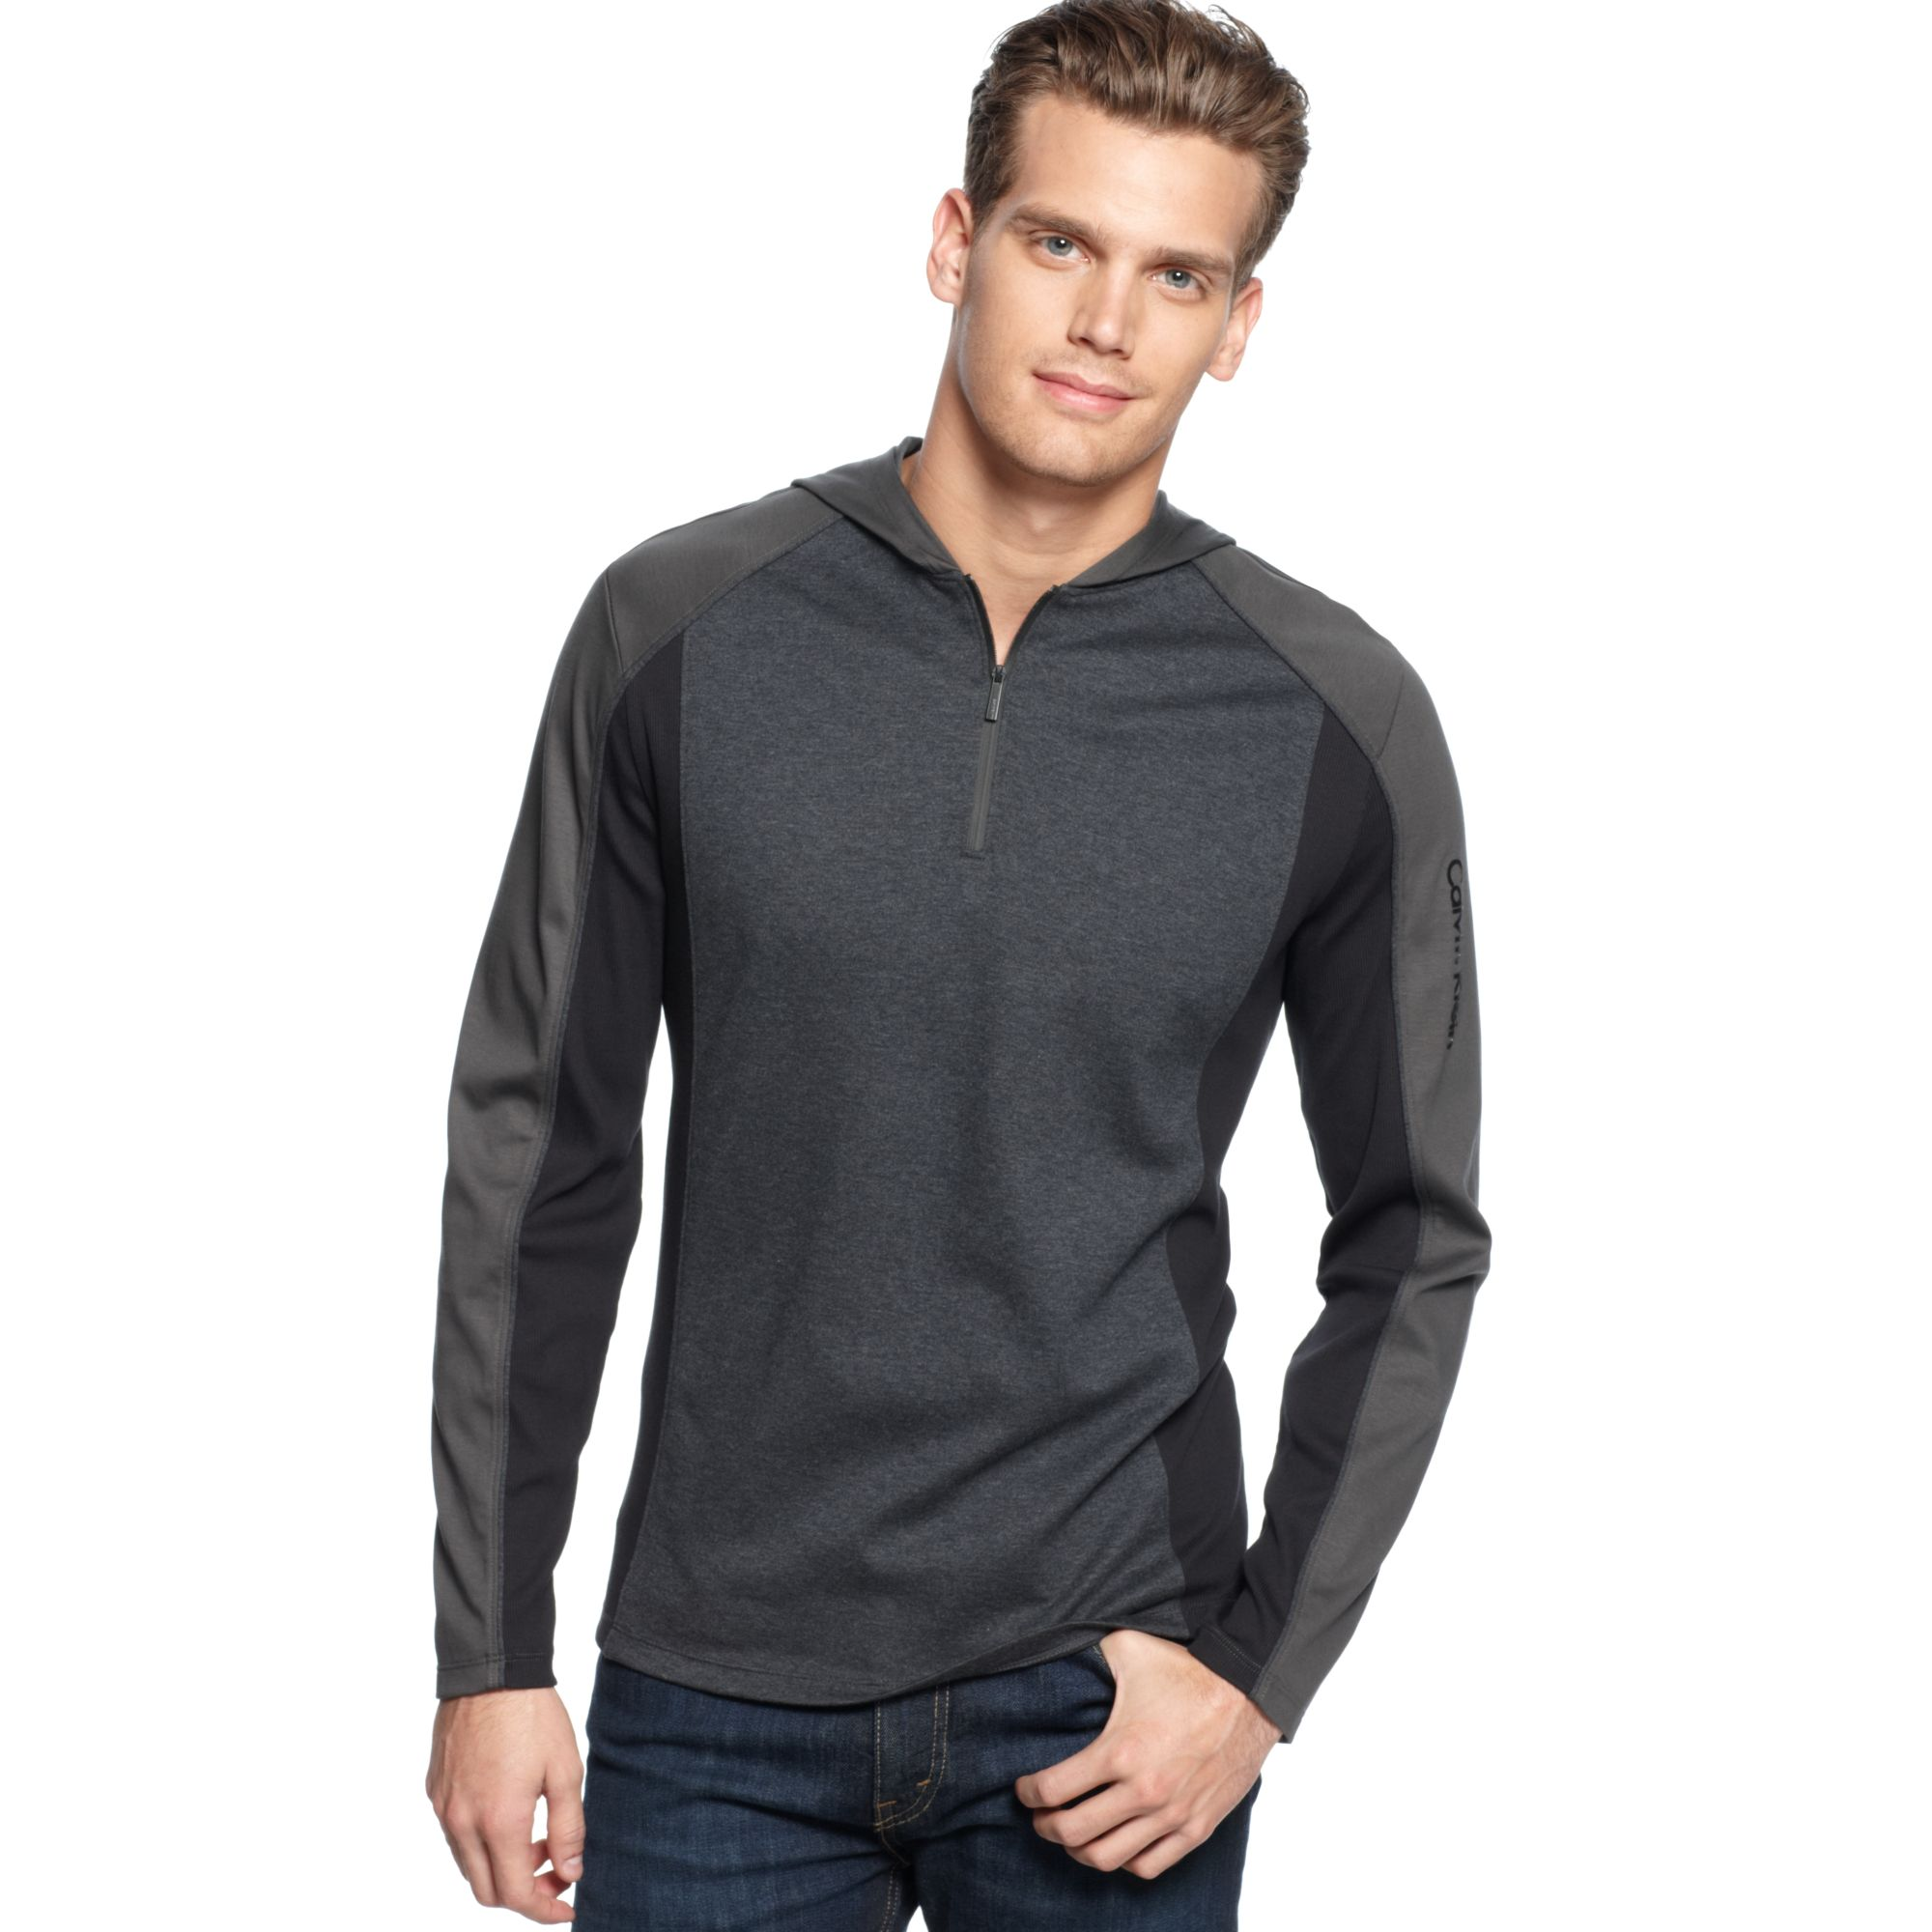 calvin klein long sleeve interlock ribbed hoodie shirt in gray for men raven lyst. Black Bedroom Furniture Sets. Home Design Ideas